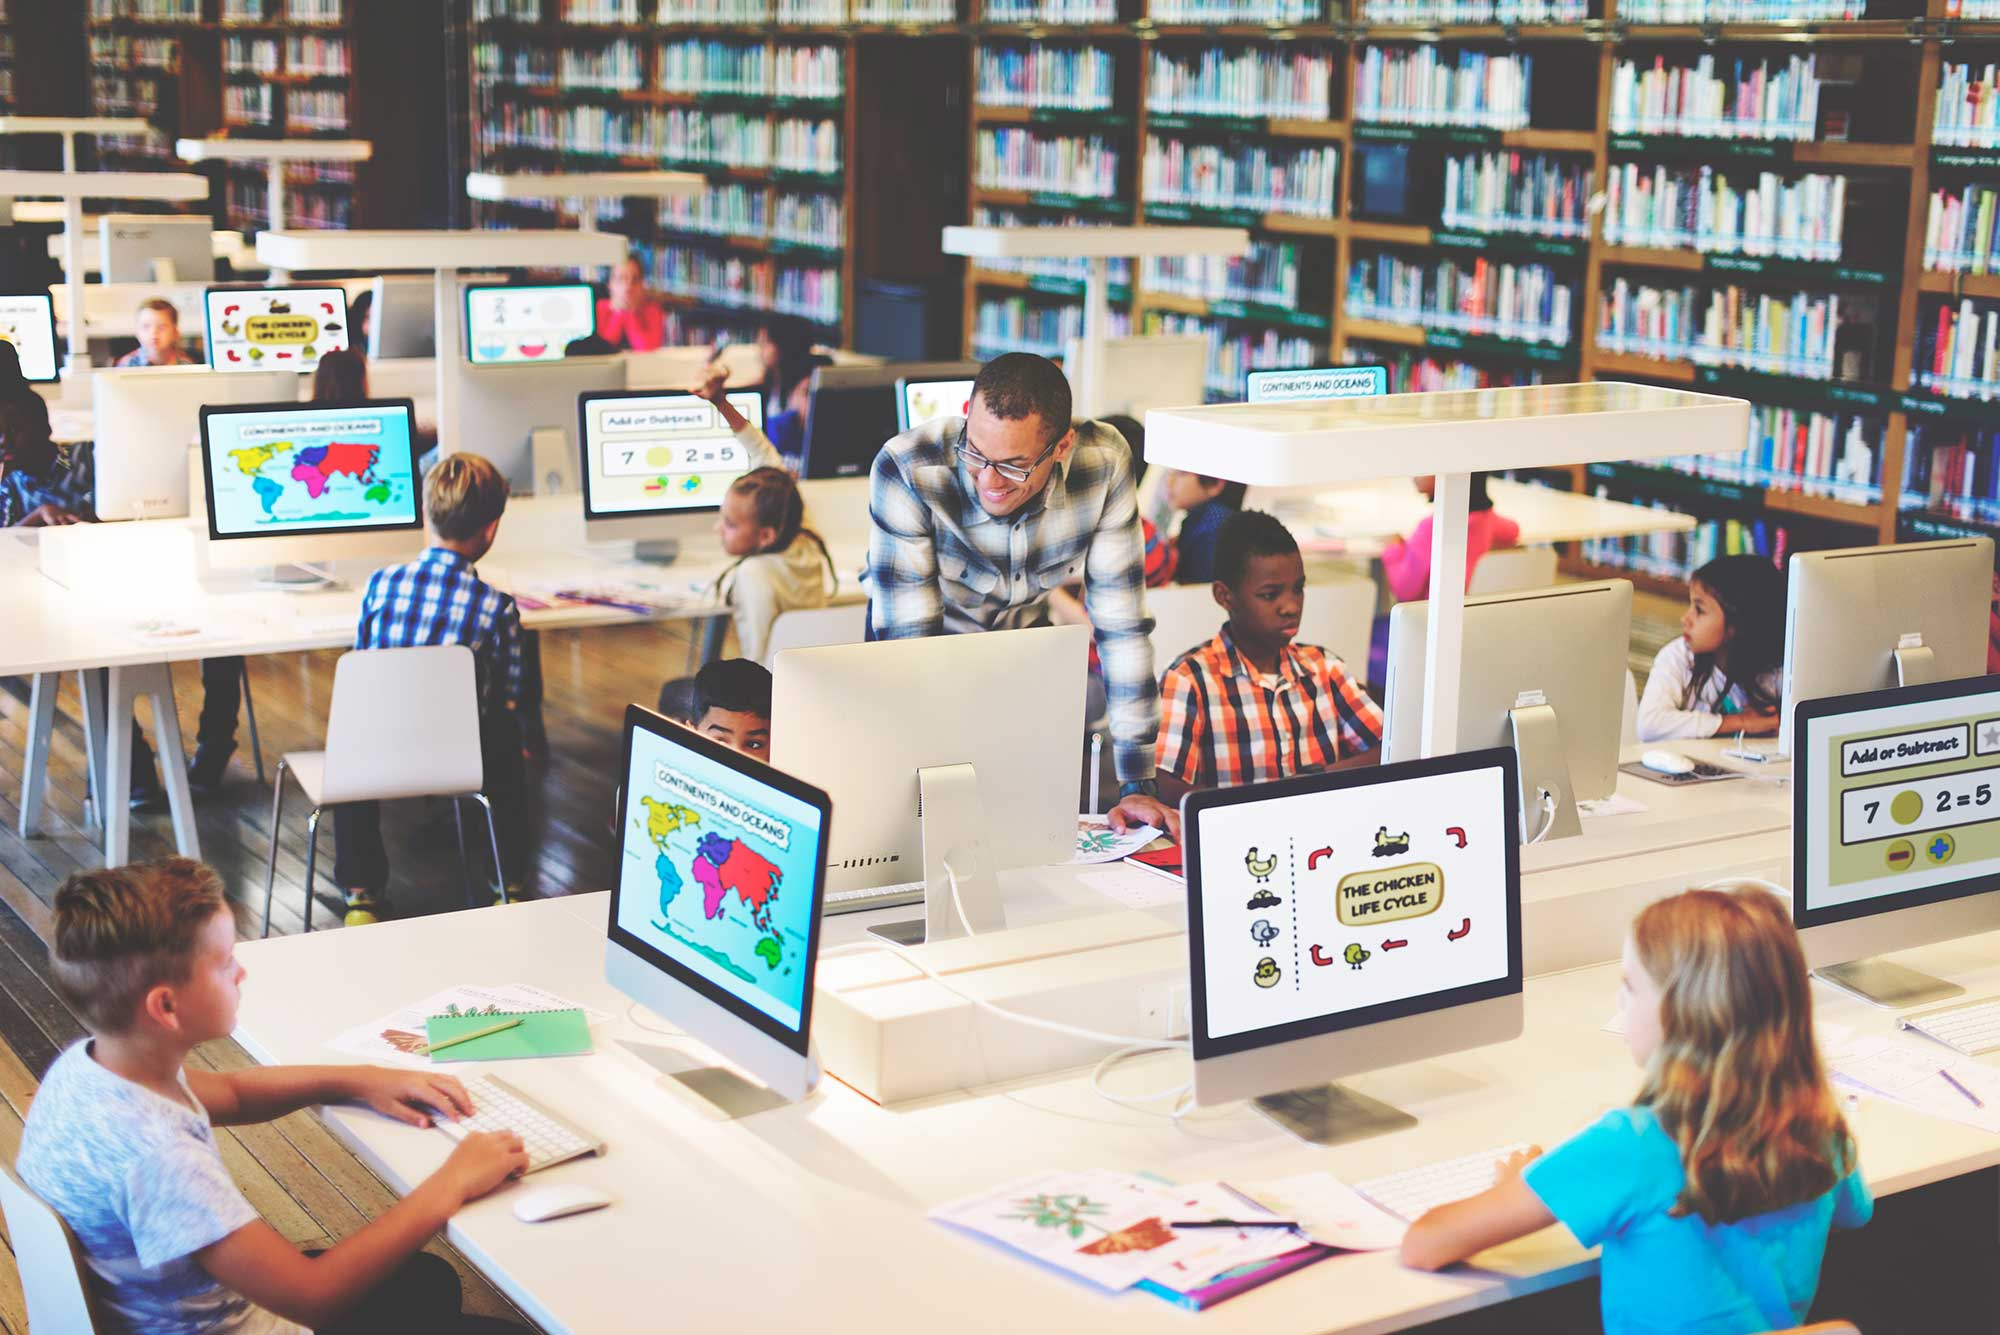 How technology can help improve education  | Tech & Learning